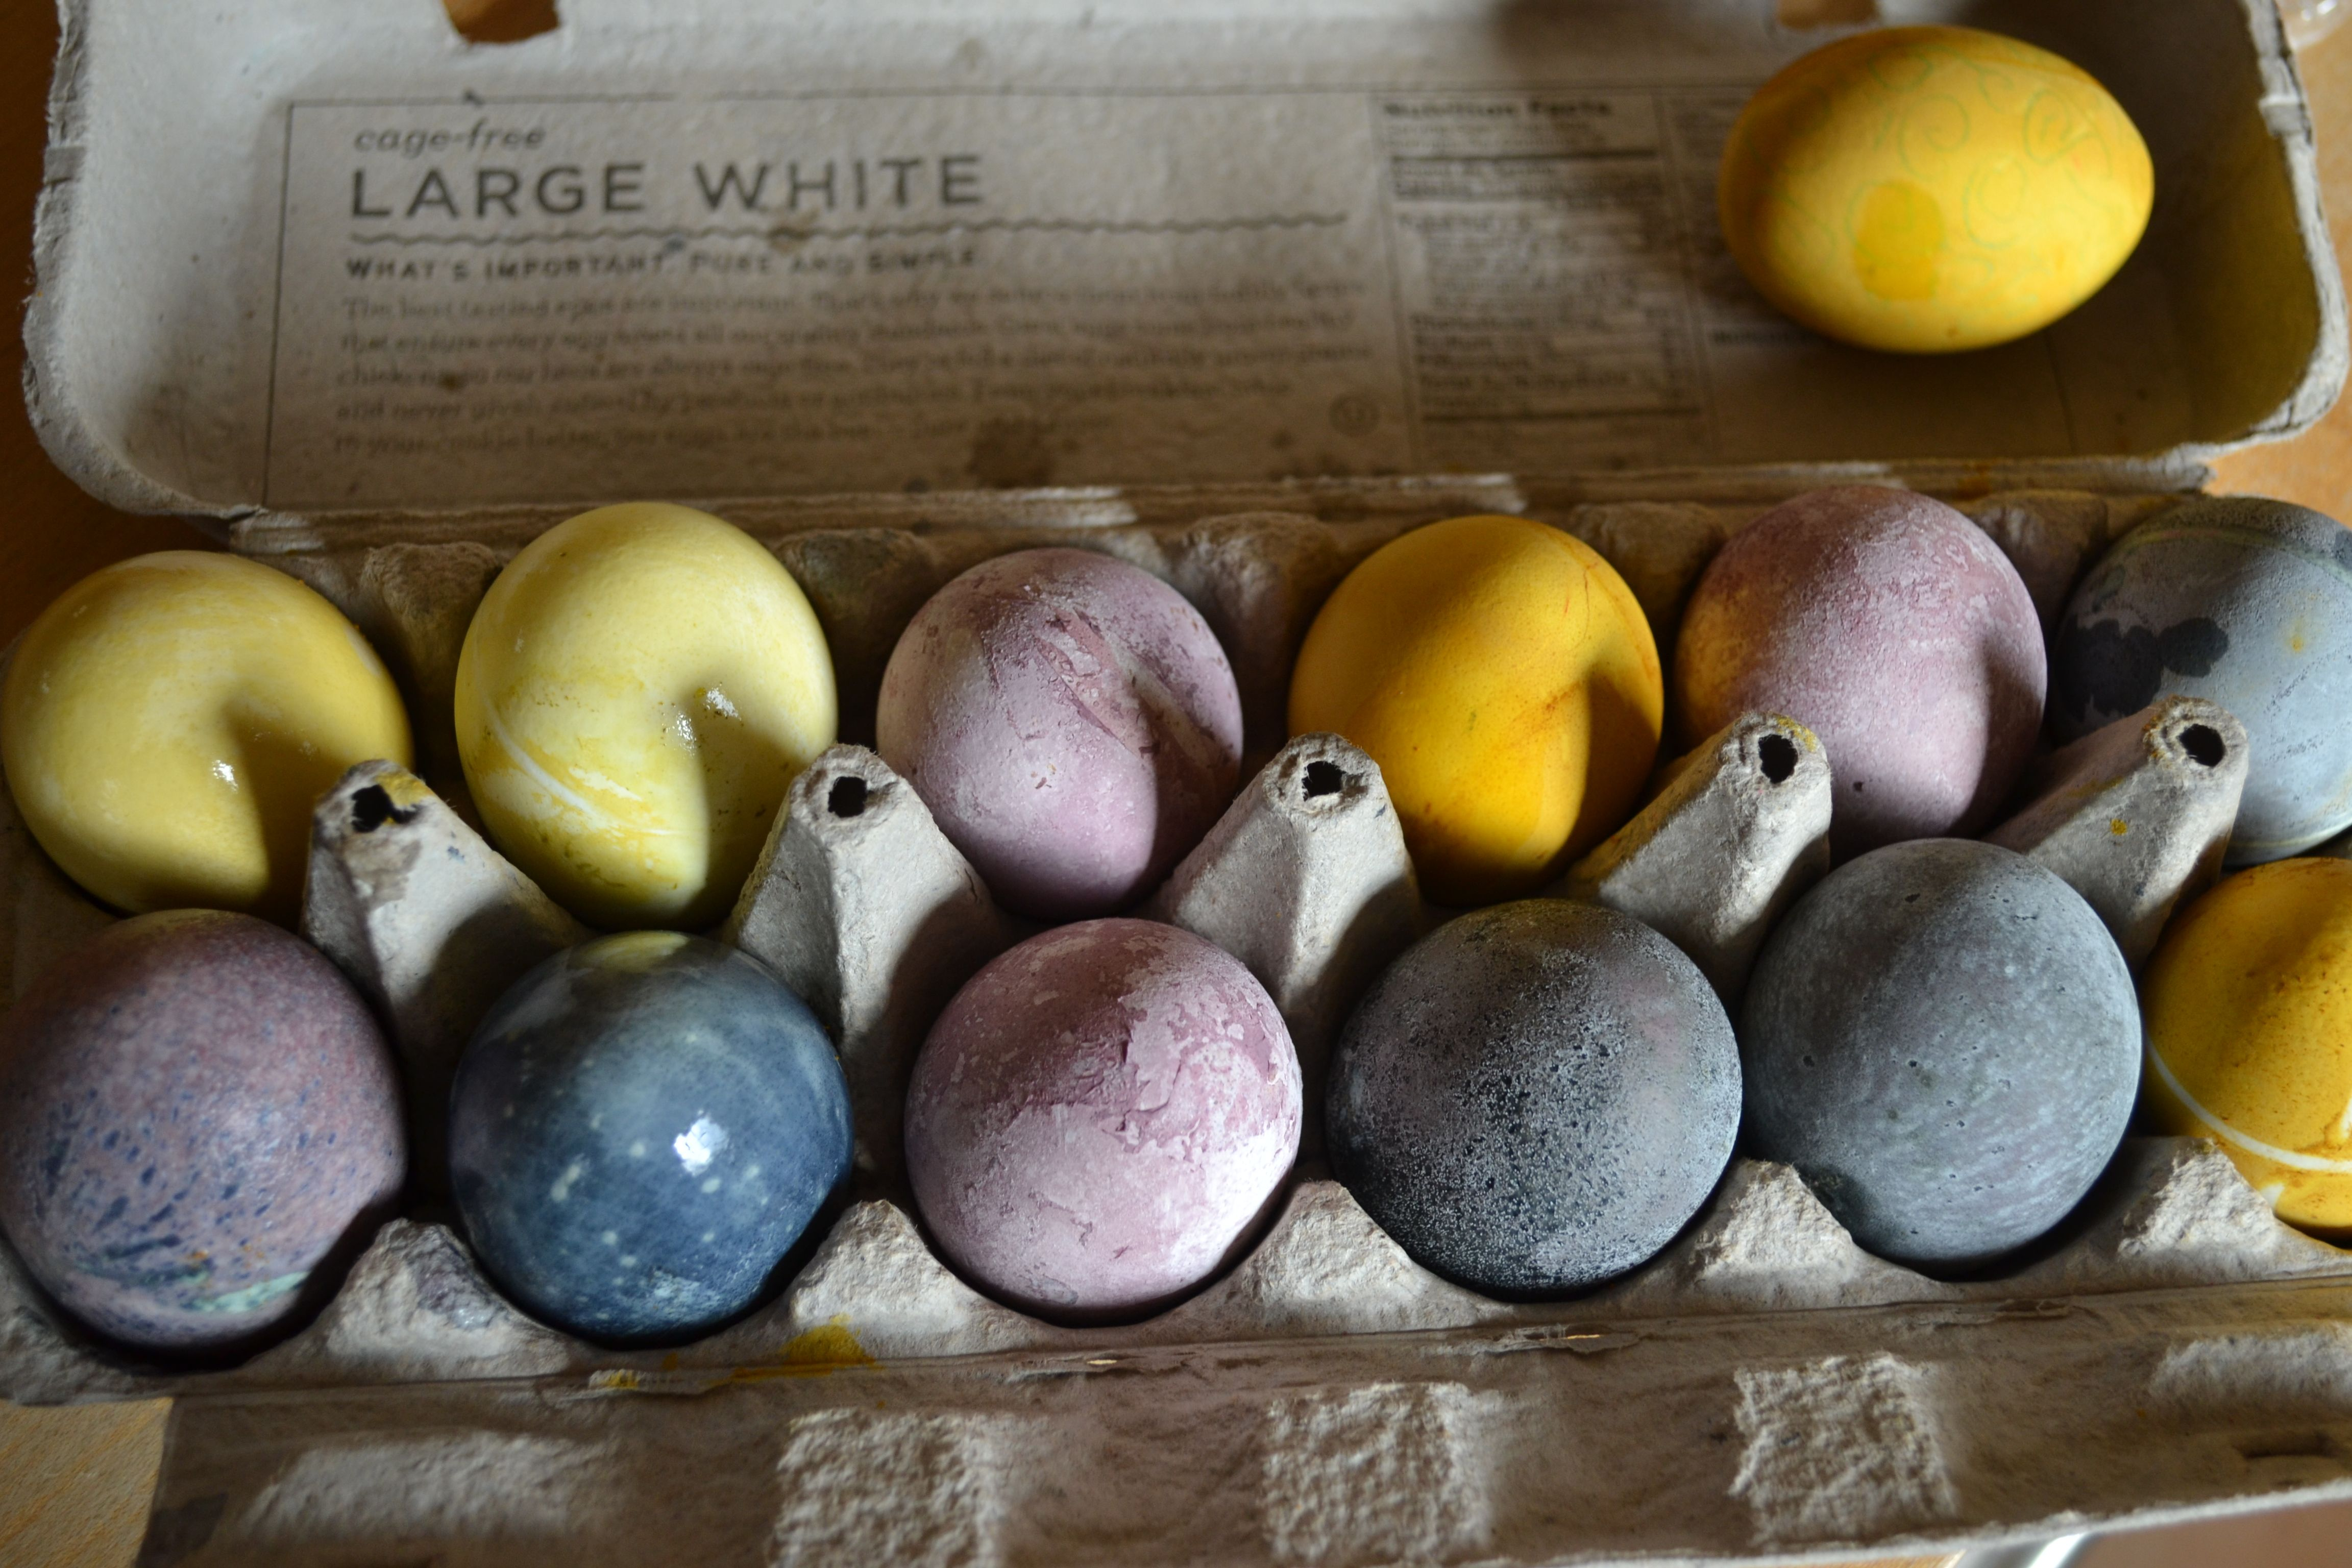 All Natural Plant Dyes for Easter Eggs